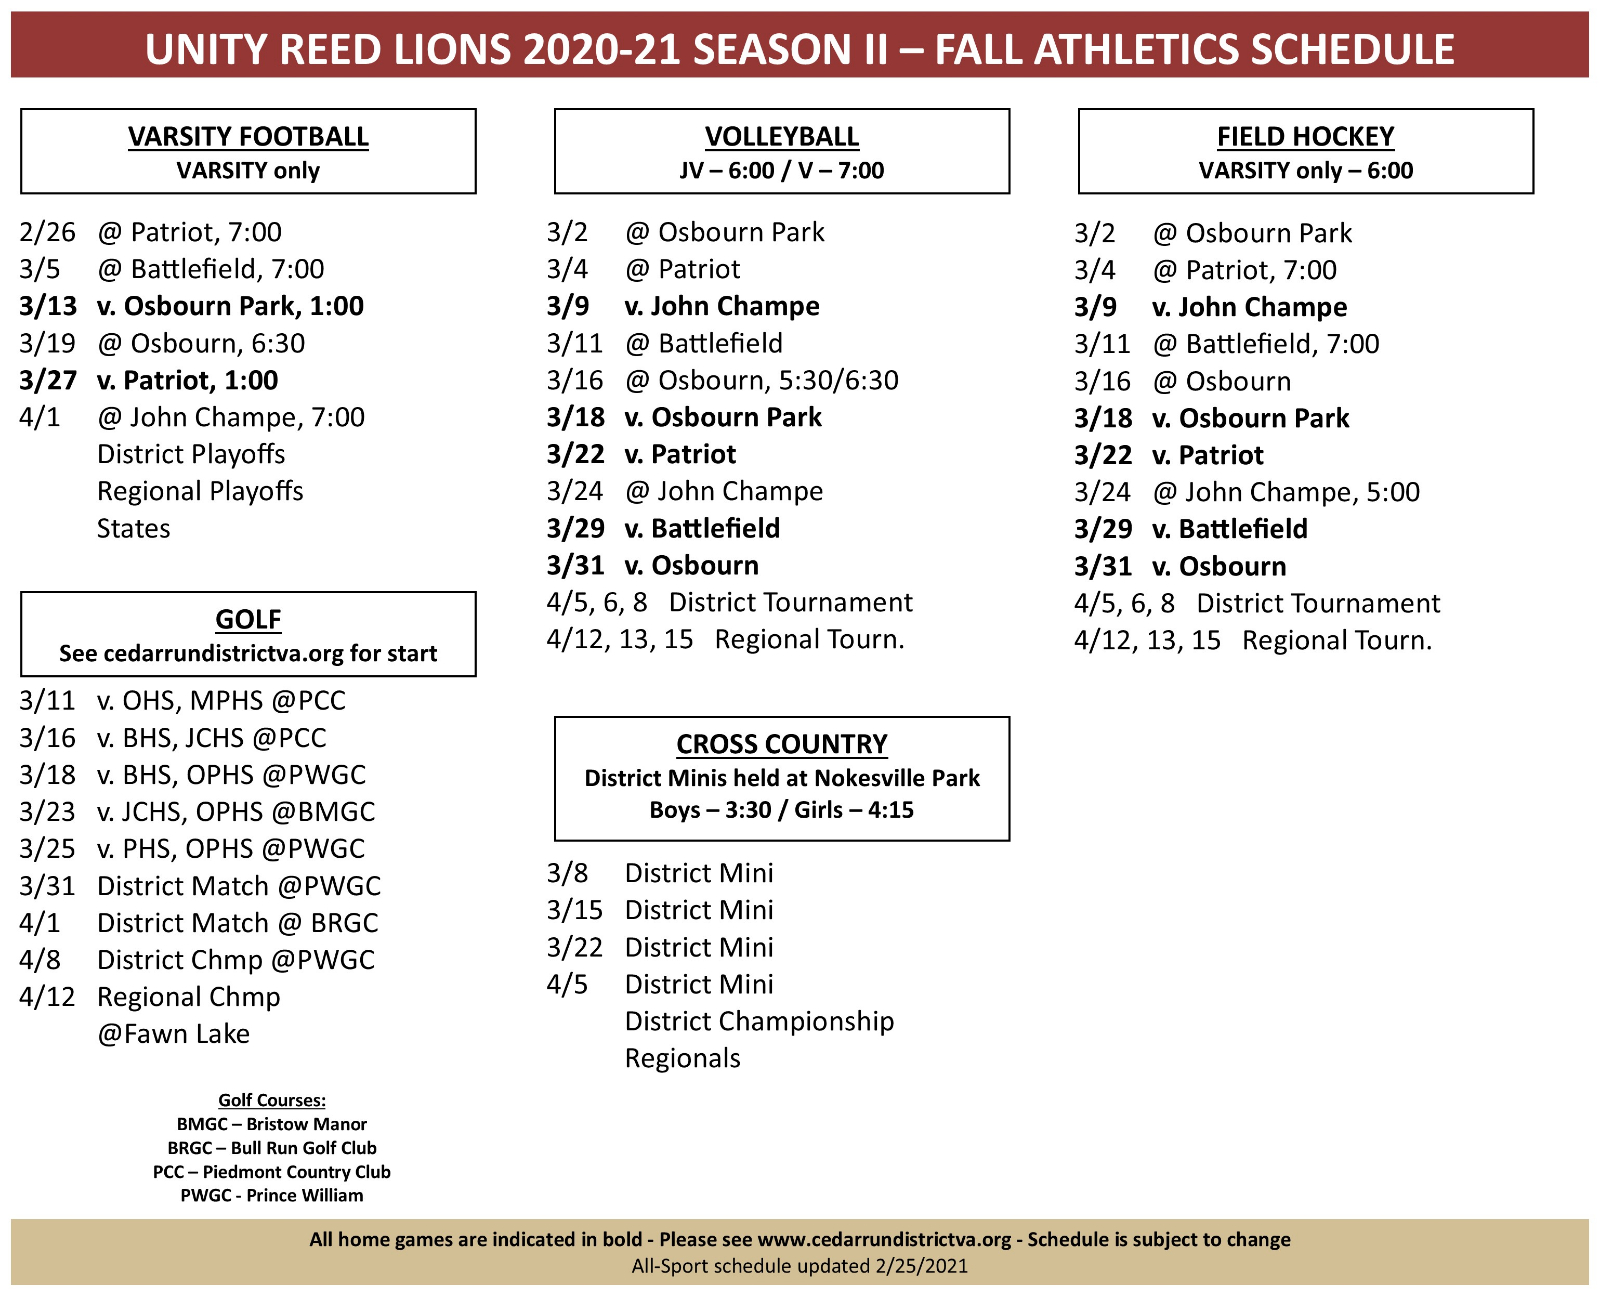 Lions Fall Sports Schedule